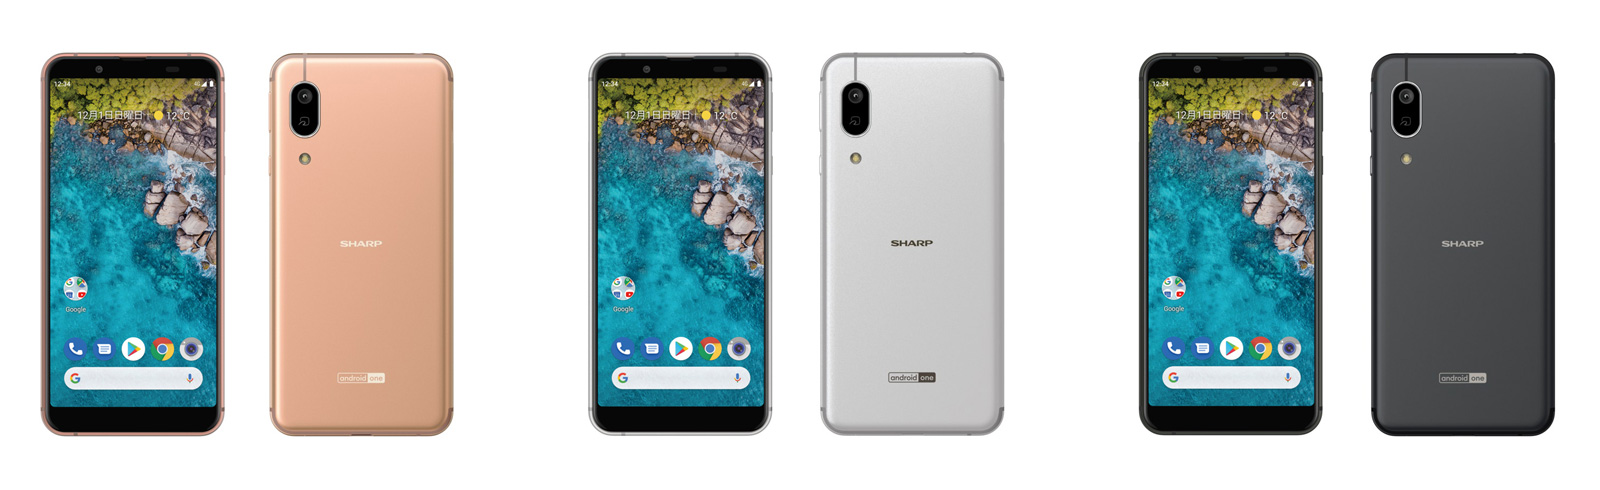 Sharp has announced the Android One S7 with Android 10, Snapdragon 630